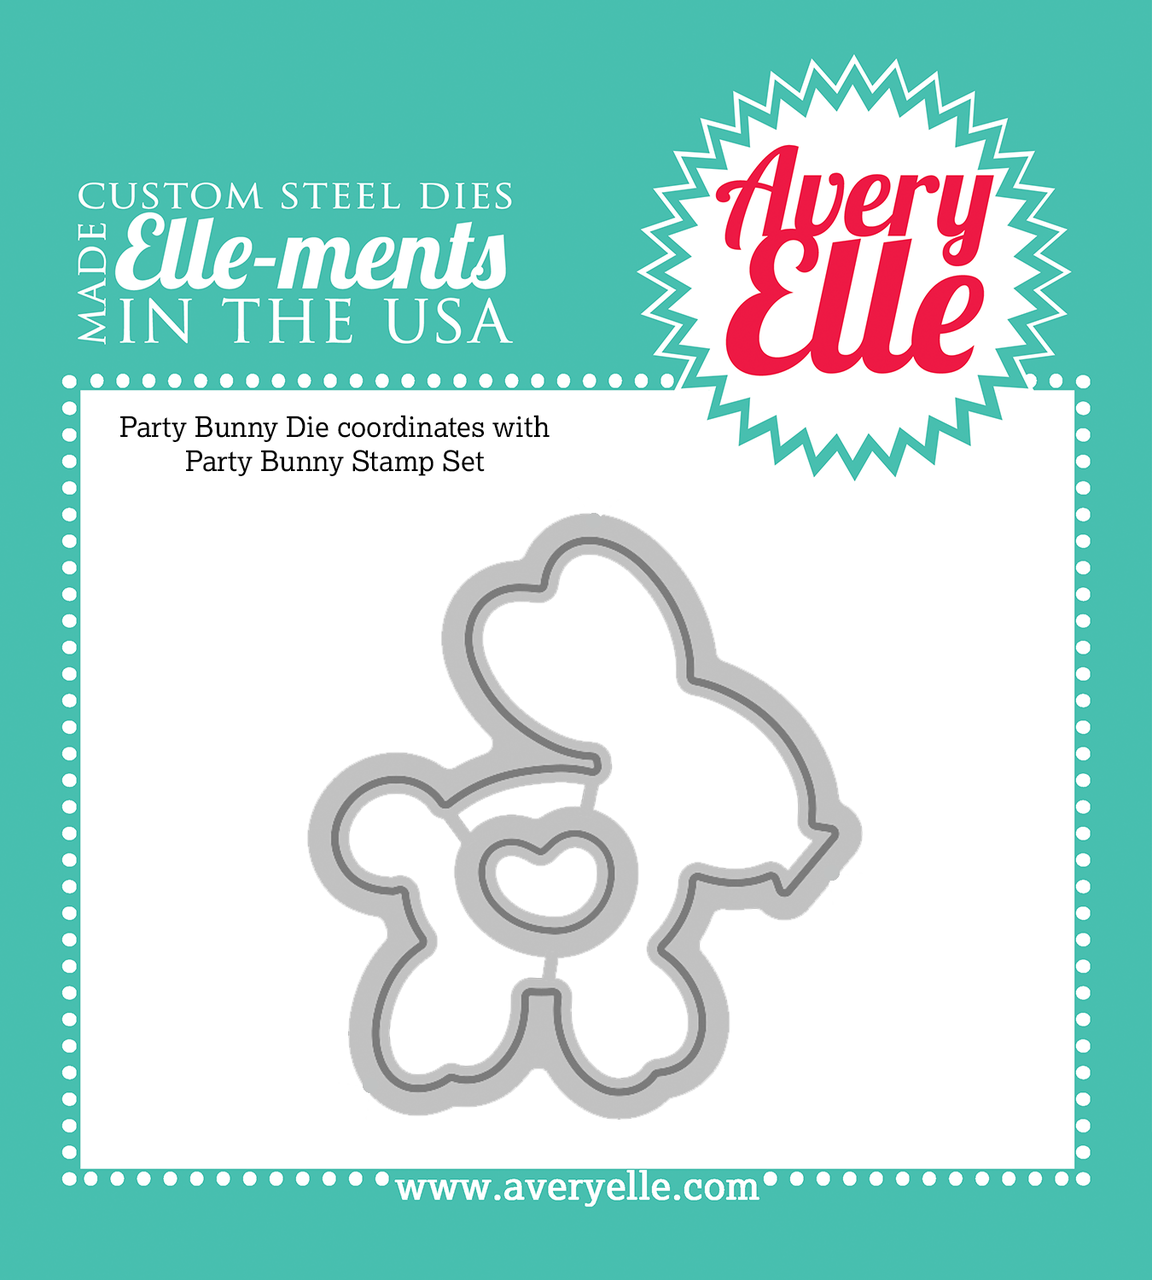 Custom Steel Dies - Party Bunny by Avery Elle Inc.